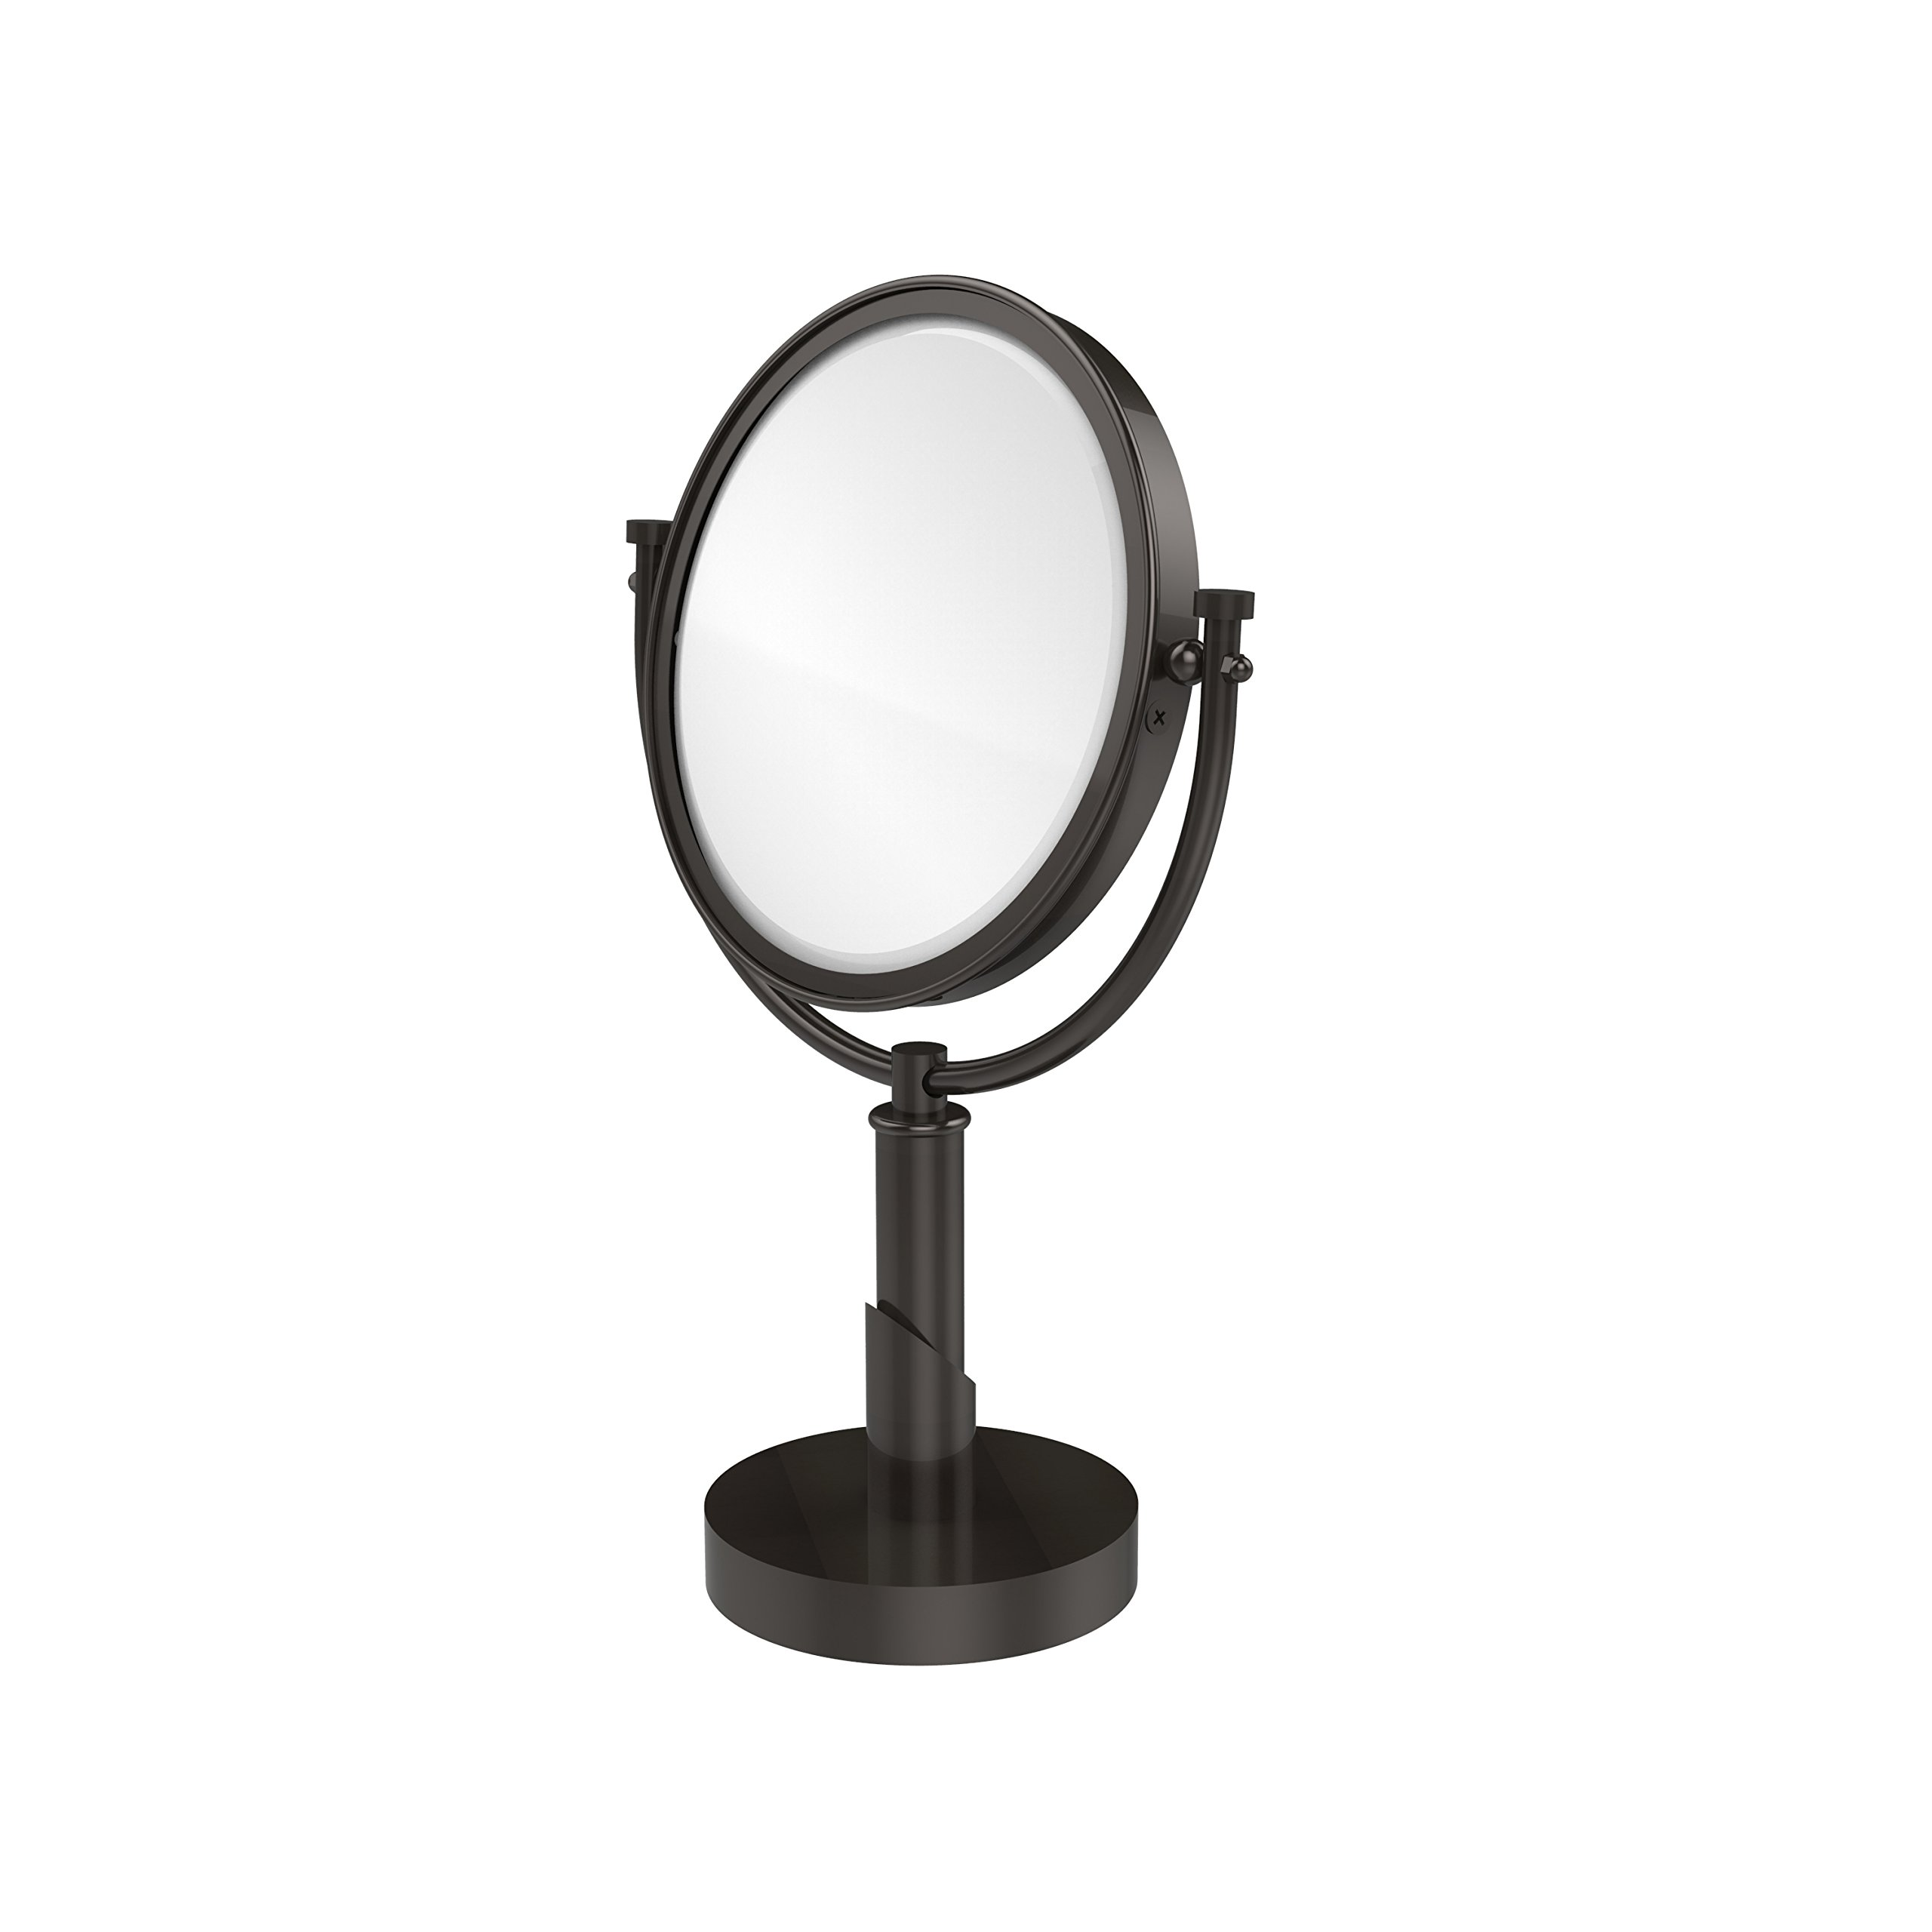 Allied Brass TR-4/2X-ORB Table Mirror with 2X Magnification, Oil Rubbed Bronze